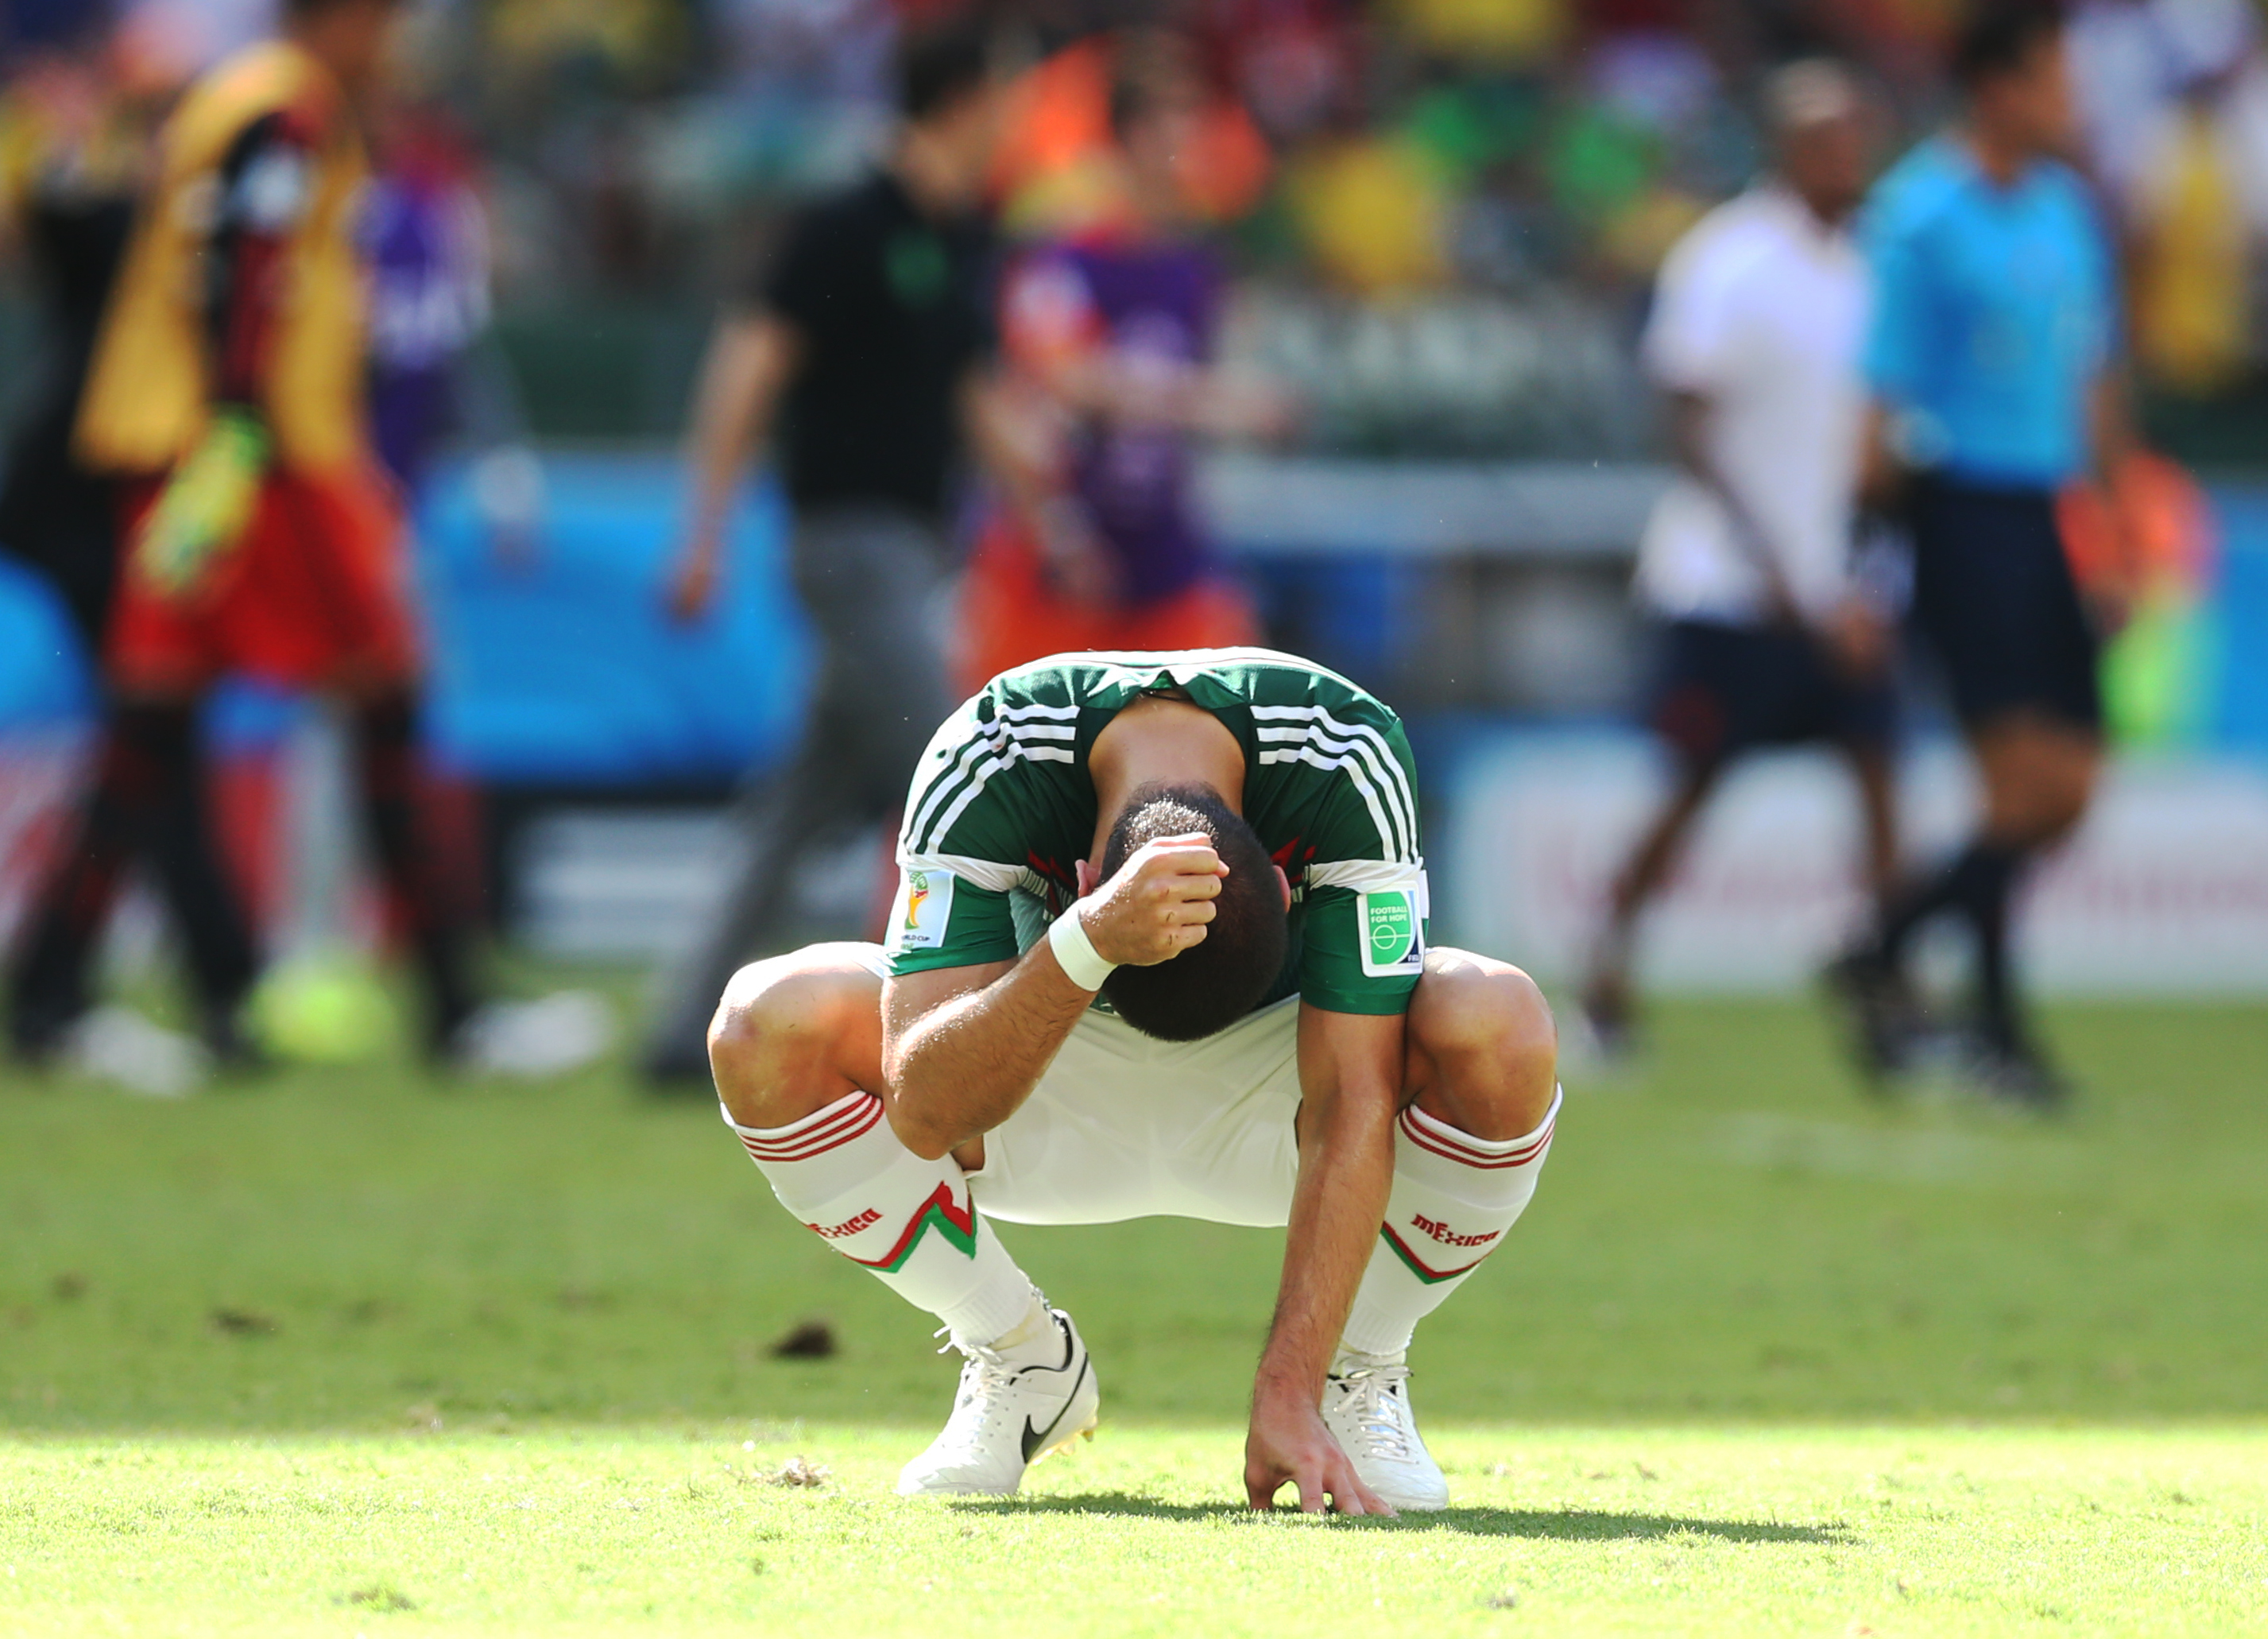 A dejected Javier 'Chicharito' Hernandez of Mexico at the final whistle during the Round of 16 match of the 2014 World Cup between Netherlands and Mexico at the Estadio Castelao on June 29, 2014 in Fortaleza, Brazil.